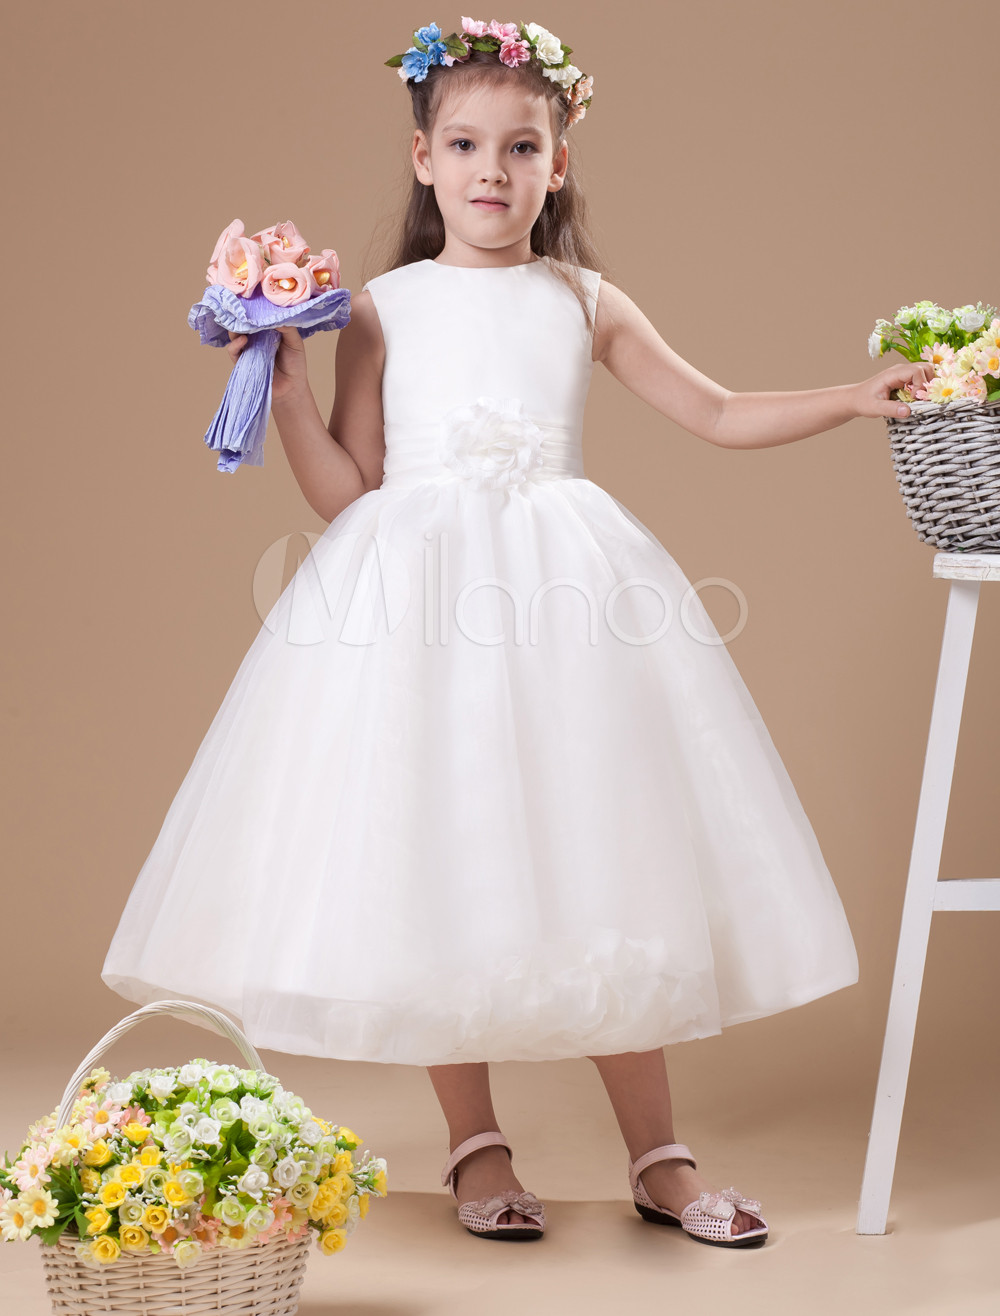 Flower Girls Dresses For Wedding Gowns Girl Birthday Party Dress Long First Communion Dresses for Girls Mother dDaughter Dresses кофемашина капсульная delonghi nespresso en 560 s